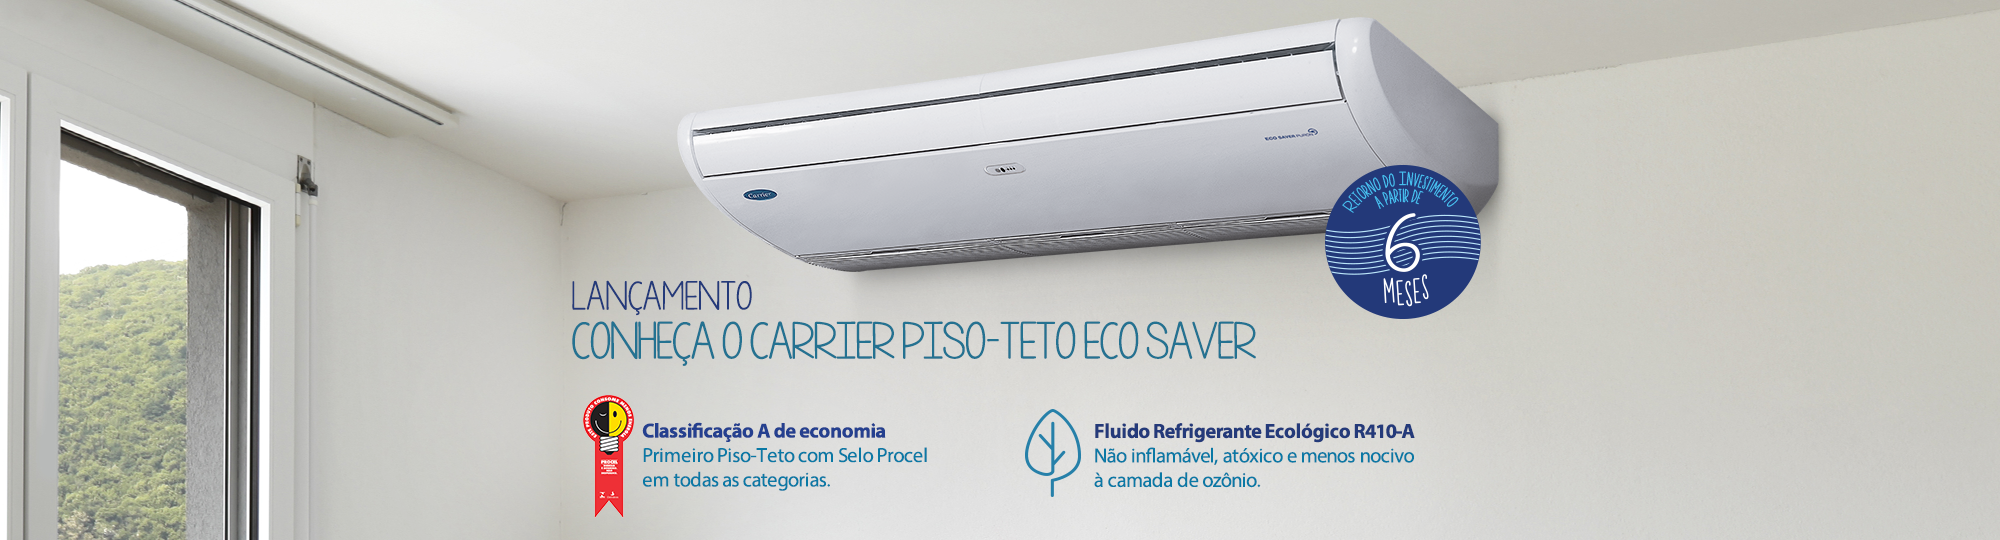 Piso Teto Space Eco Saver